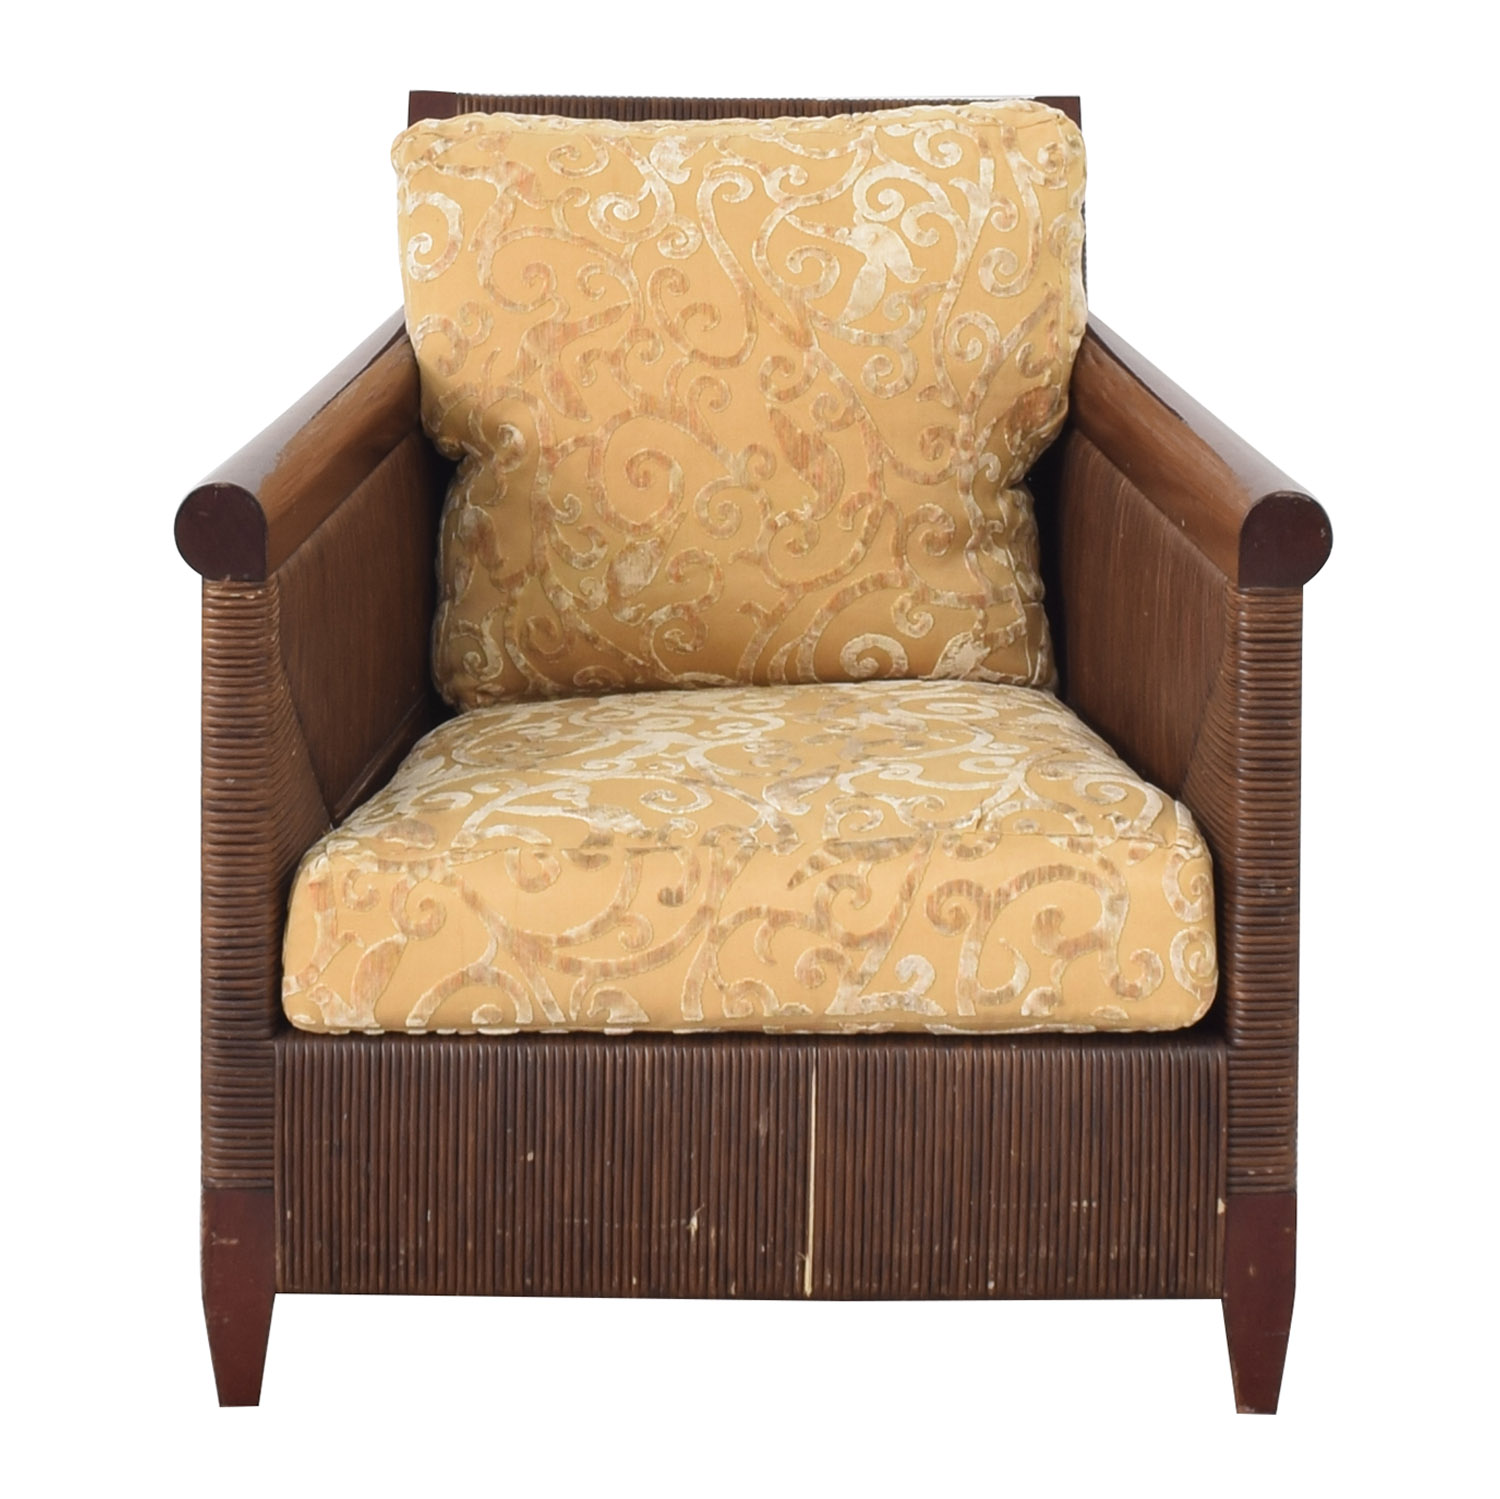 Donghia Donghia by John Hutton Mahogany and Wicker Lounger Chairs